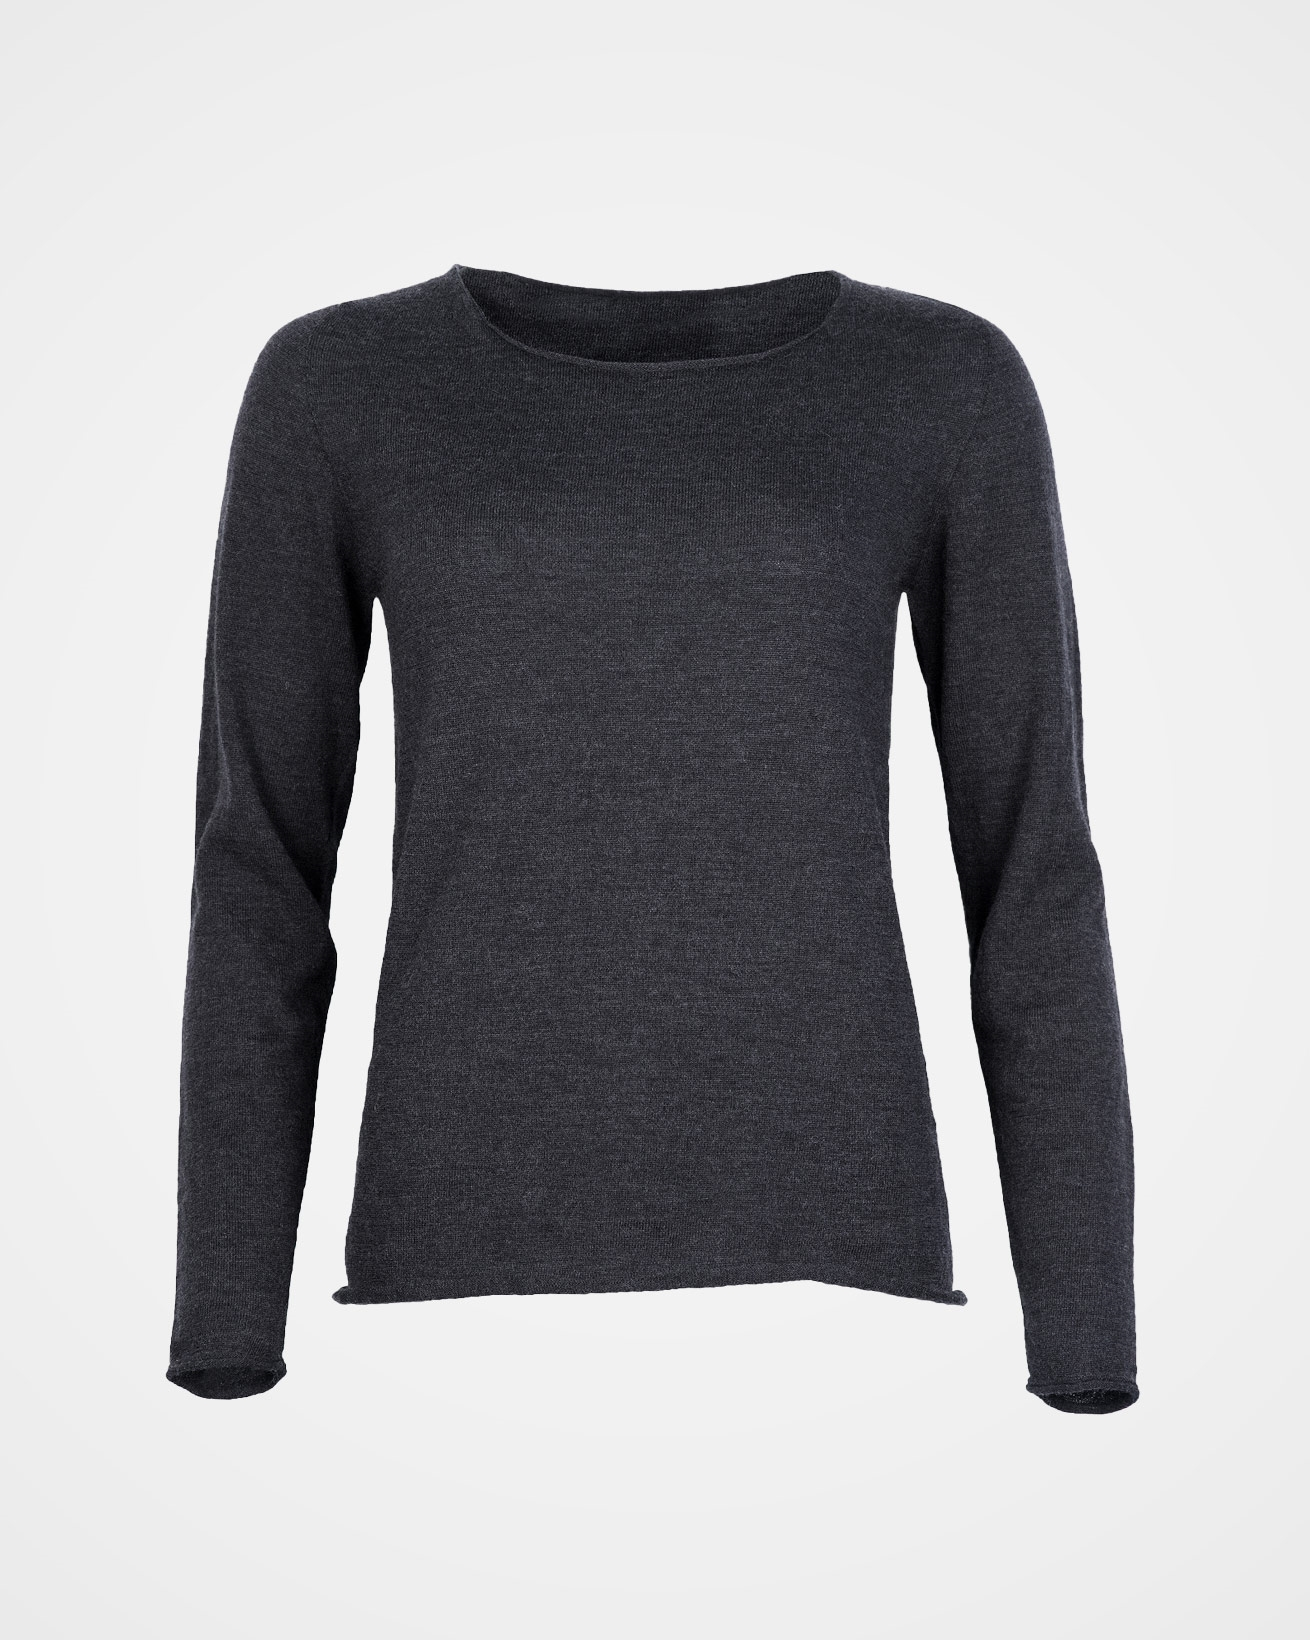 7036_fine-knit-merino-crew-neck_charcoal_front.jpg